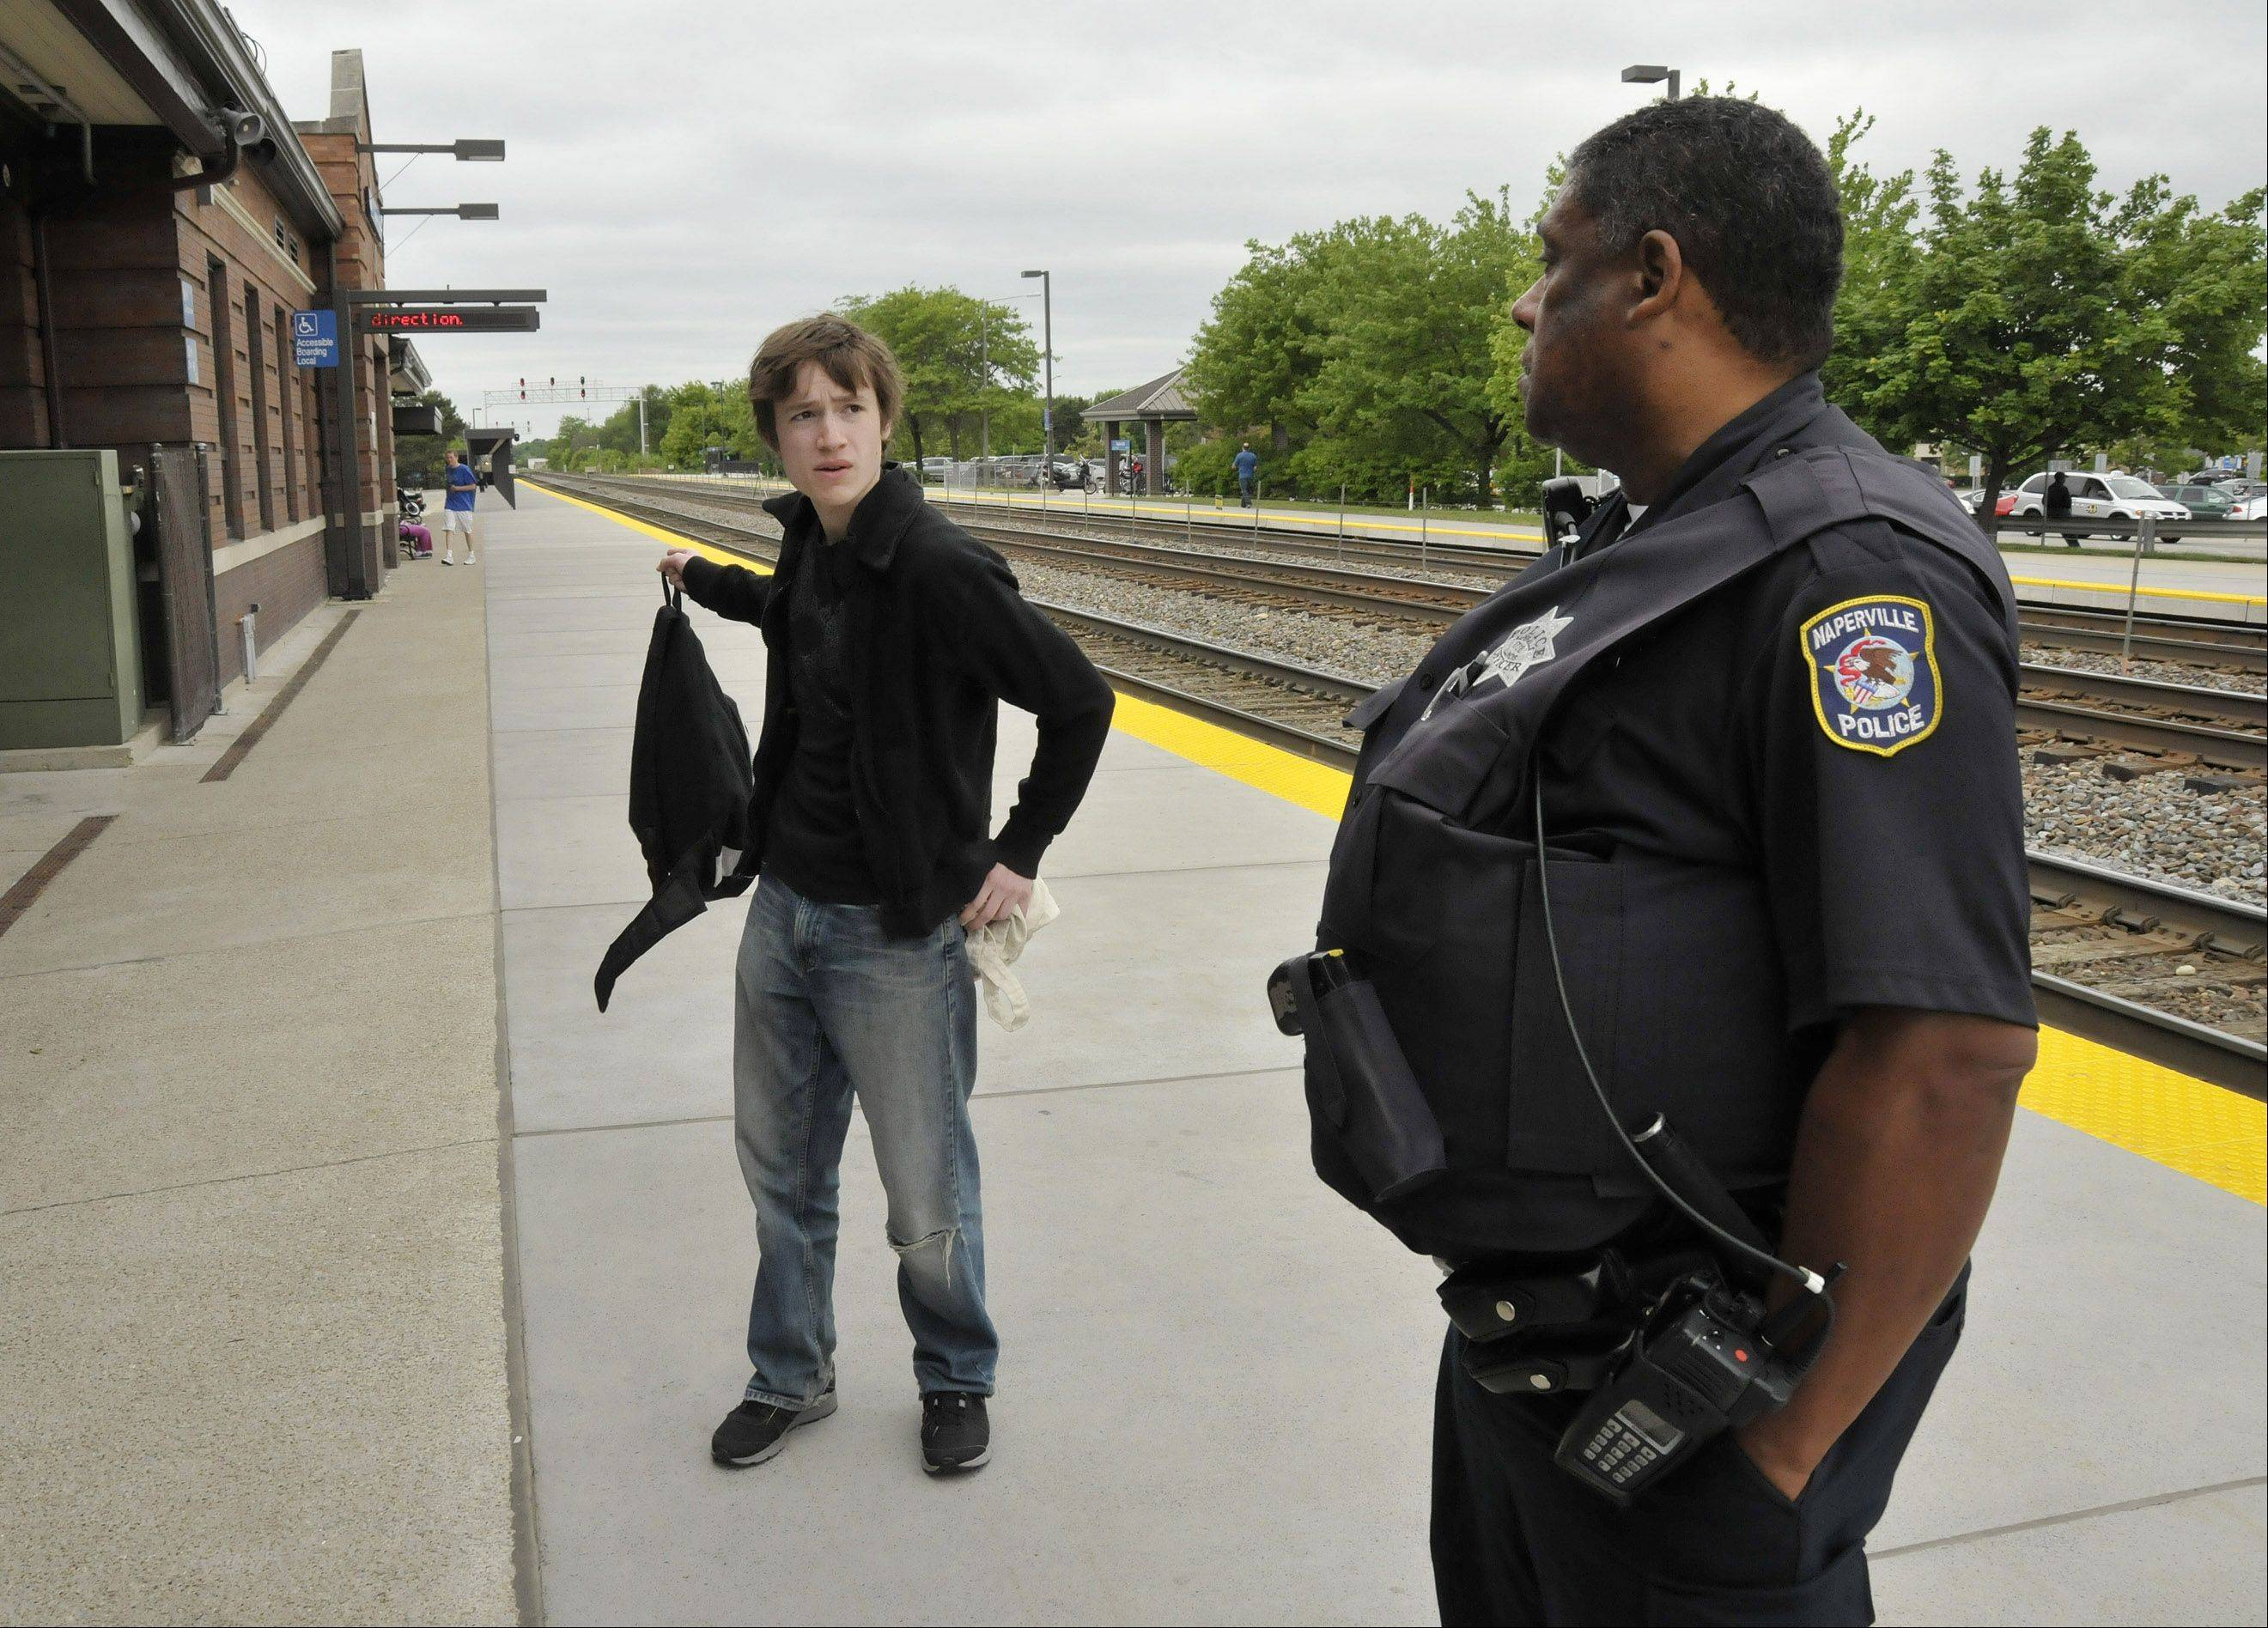 Extra security and lost fares cost Metra $800,000 during the NATO summit.